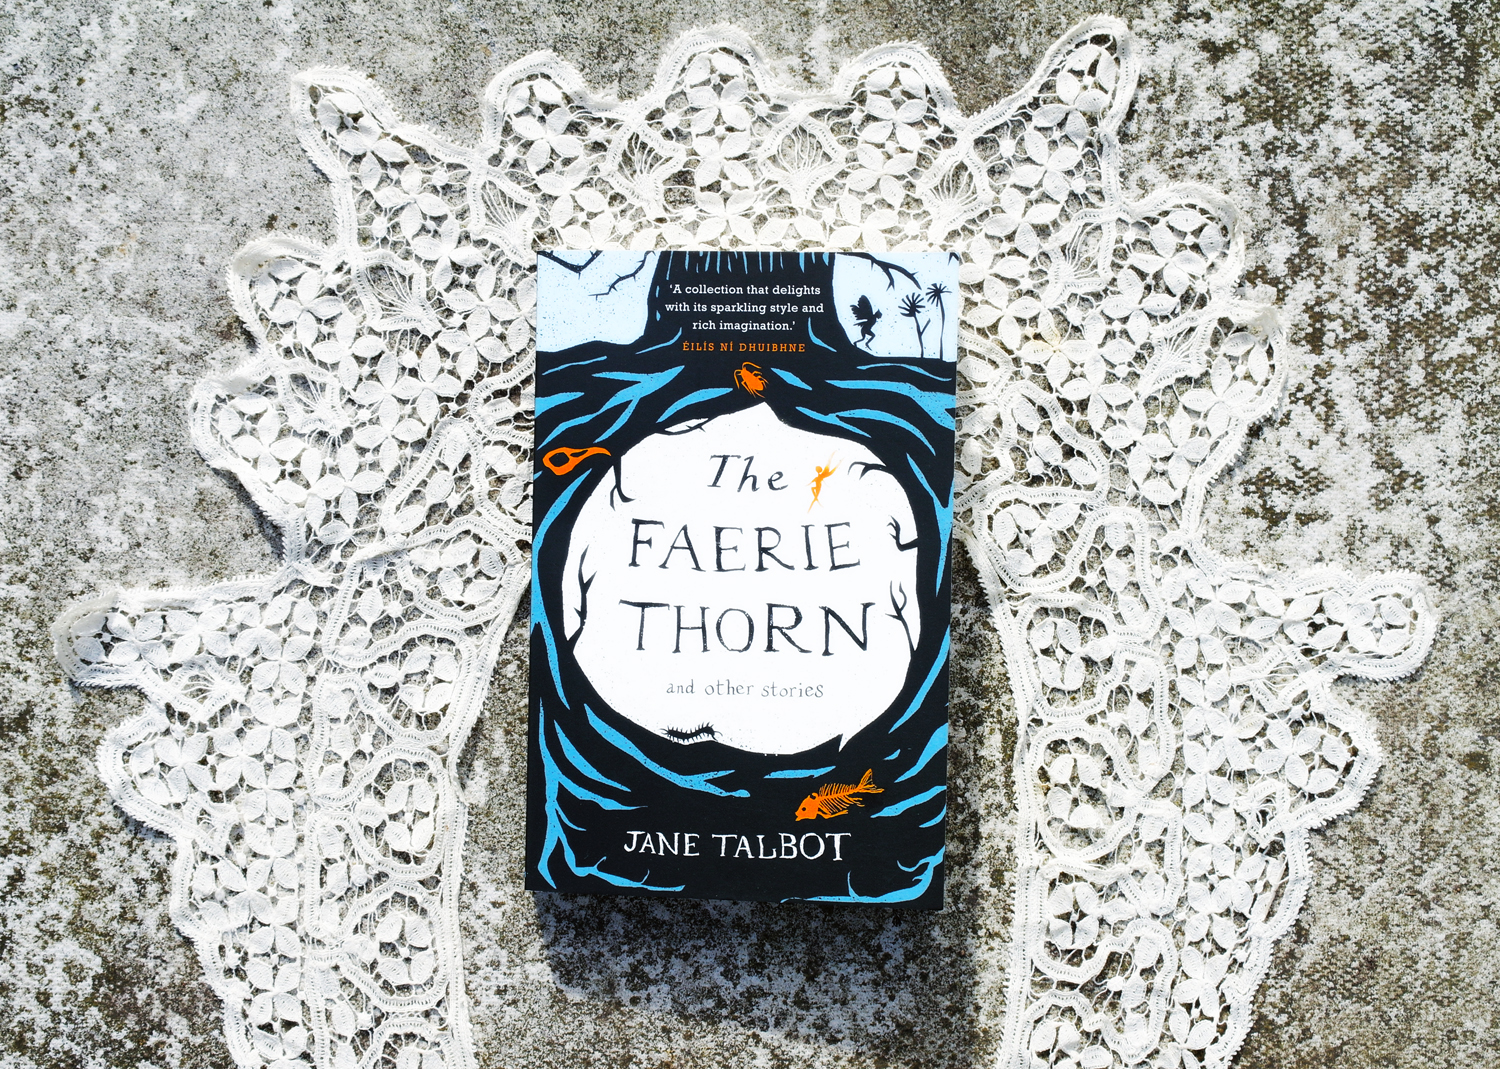 Book review of The Faerie Thorn by Jane Talbot. Modern fairy tale collection. Fairy tale retellings.